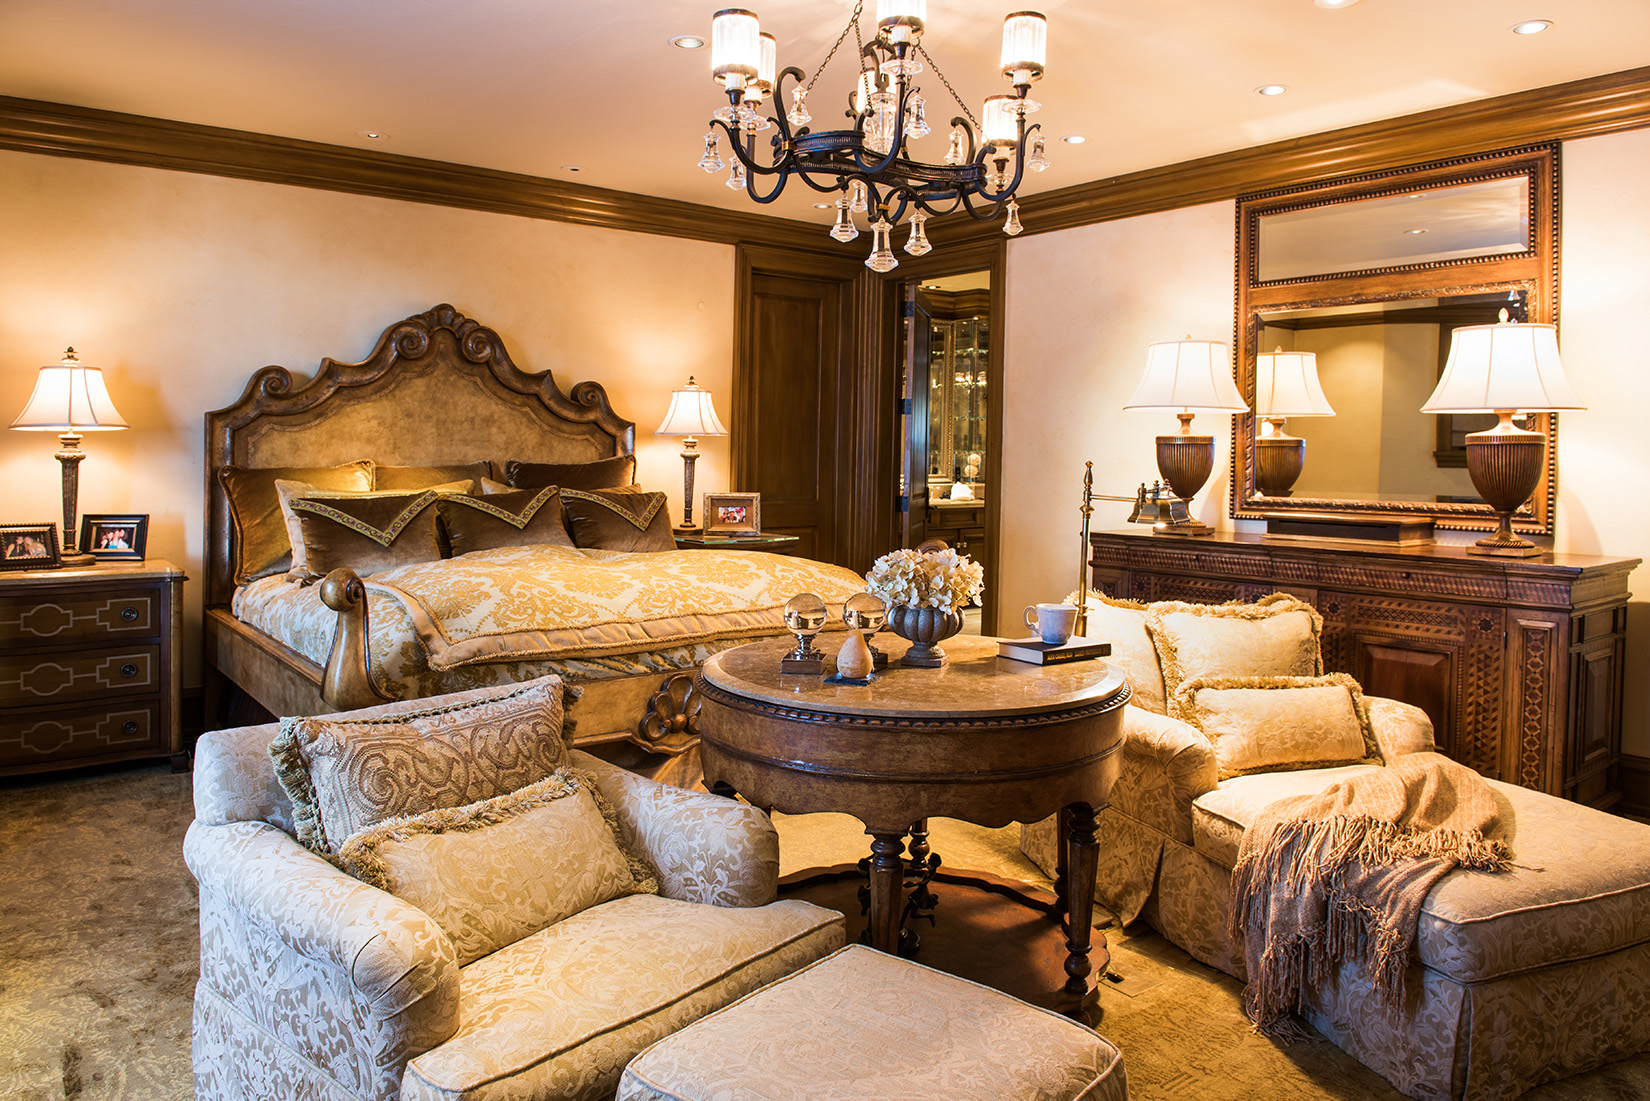 This home is all about luxury! The decor and furnishings in all the bedrooms show a sense of elegance.